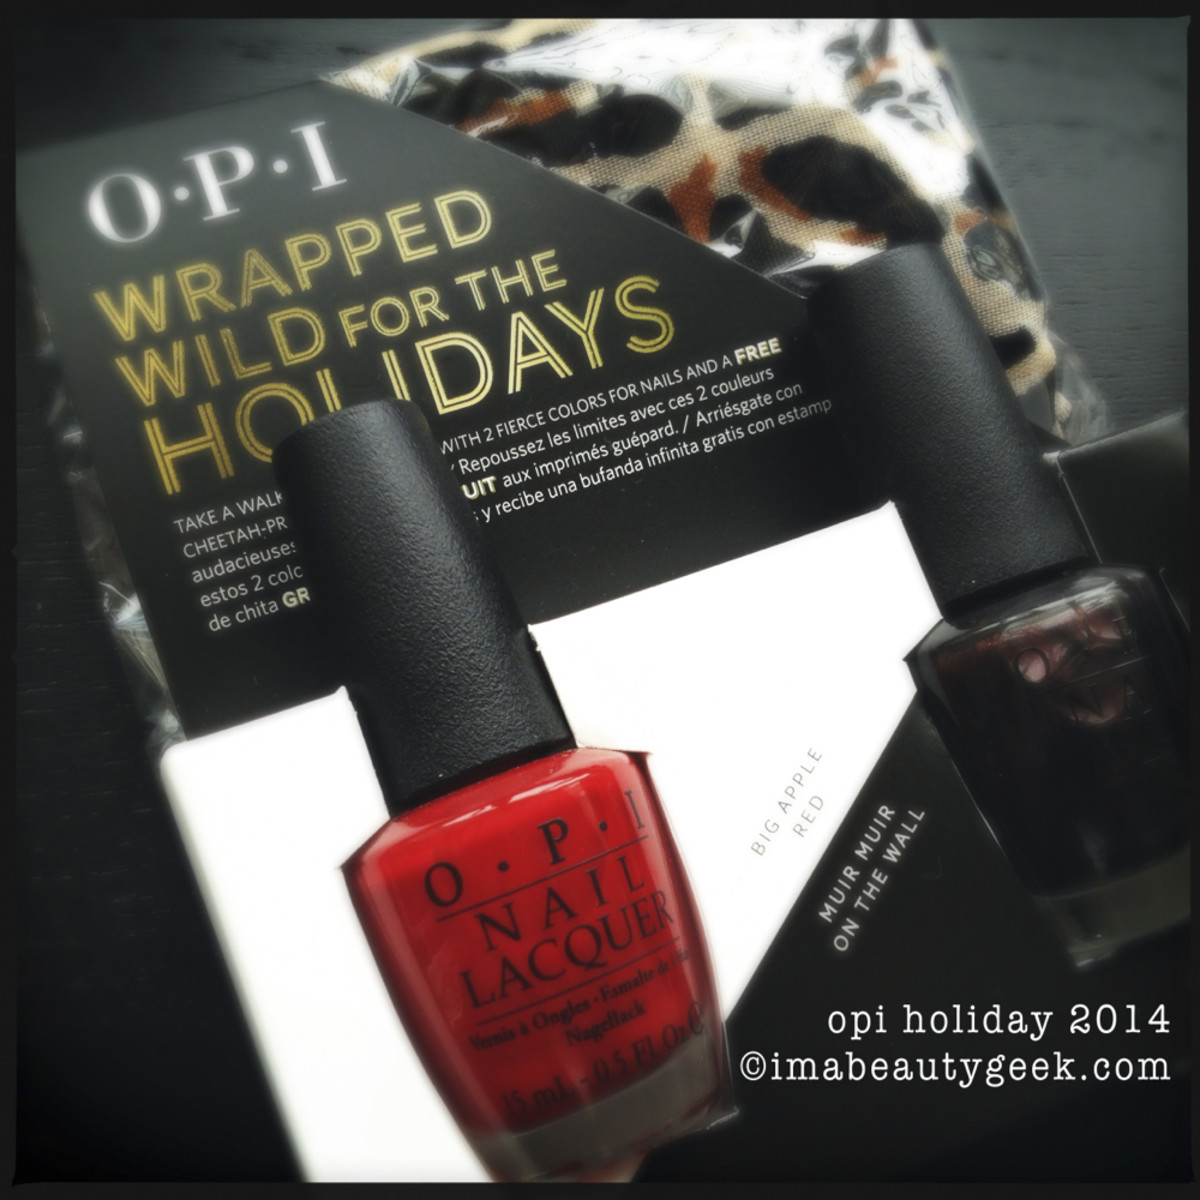 OPI Wrapped Wild For the Holidays_1